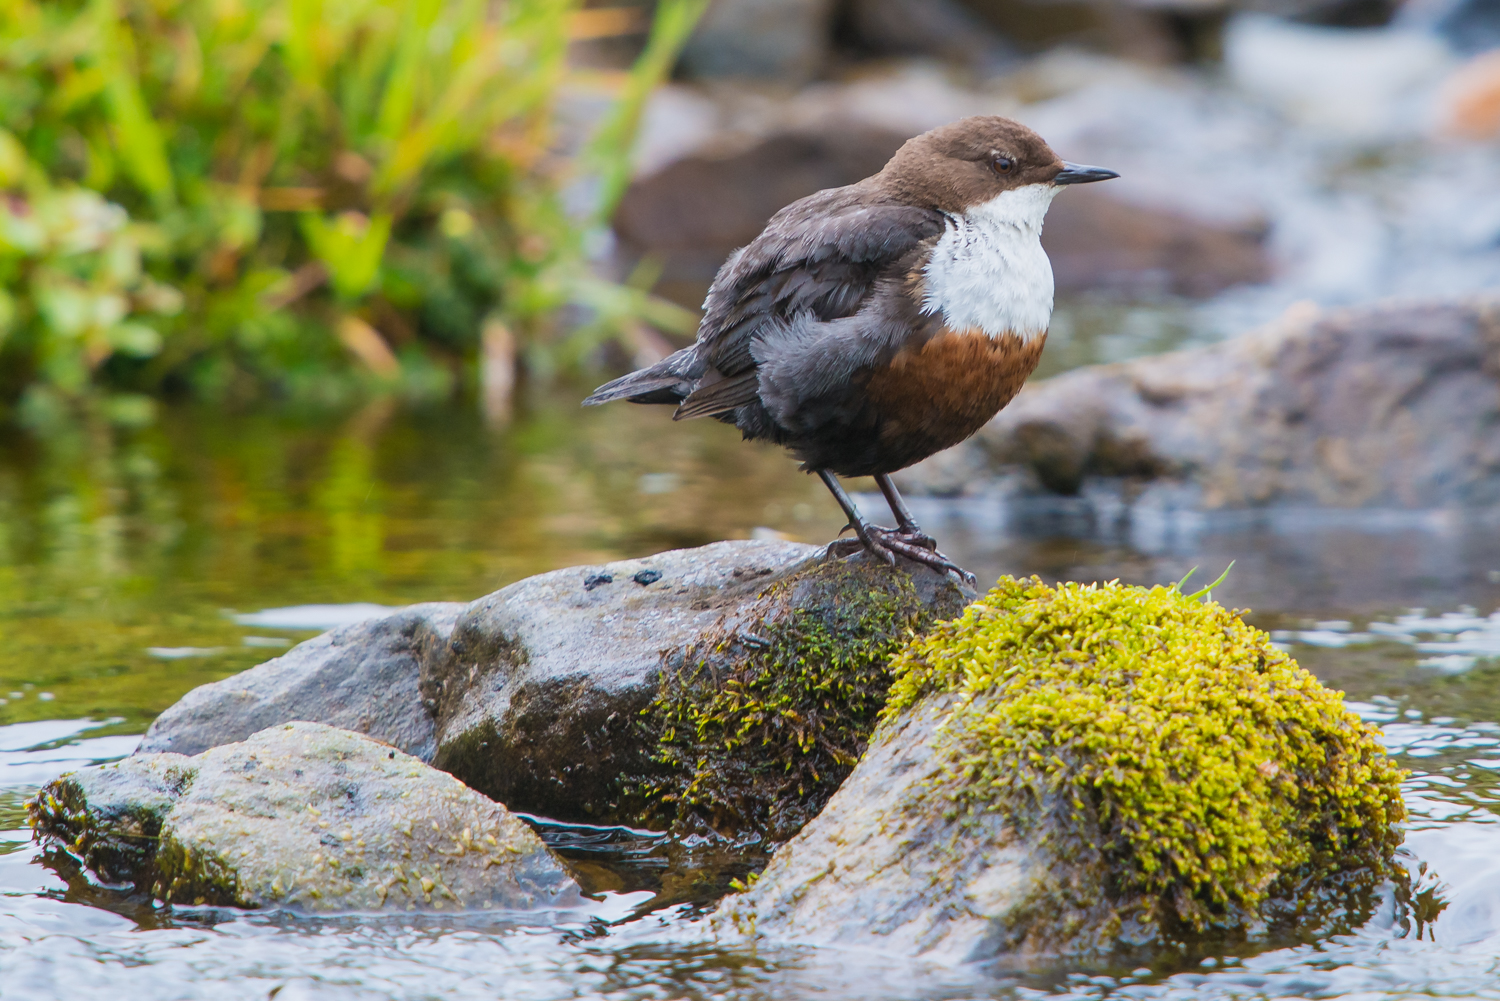 White-throated Dipper, British birds, wildlife